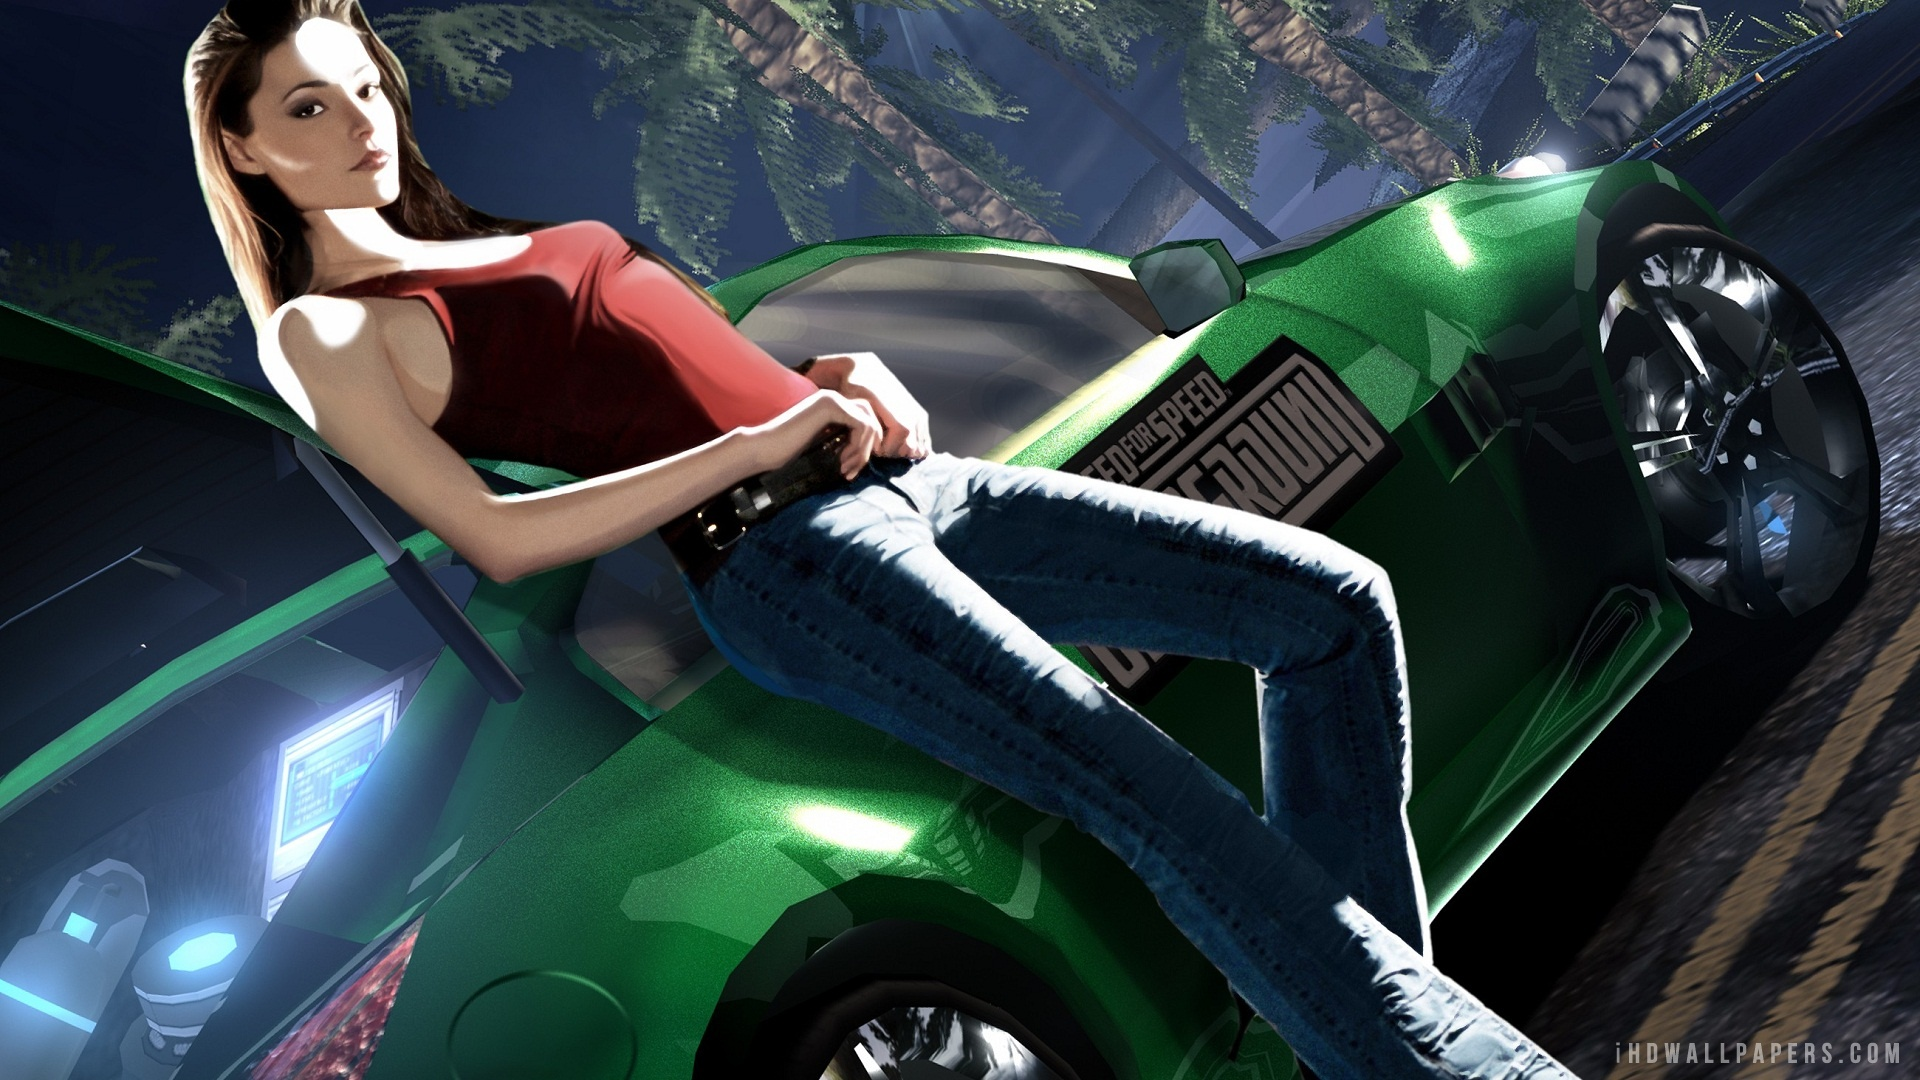 Need For Speed Underground HD Wallpaper   iHD Wallpapers 1920x1080